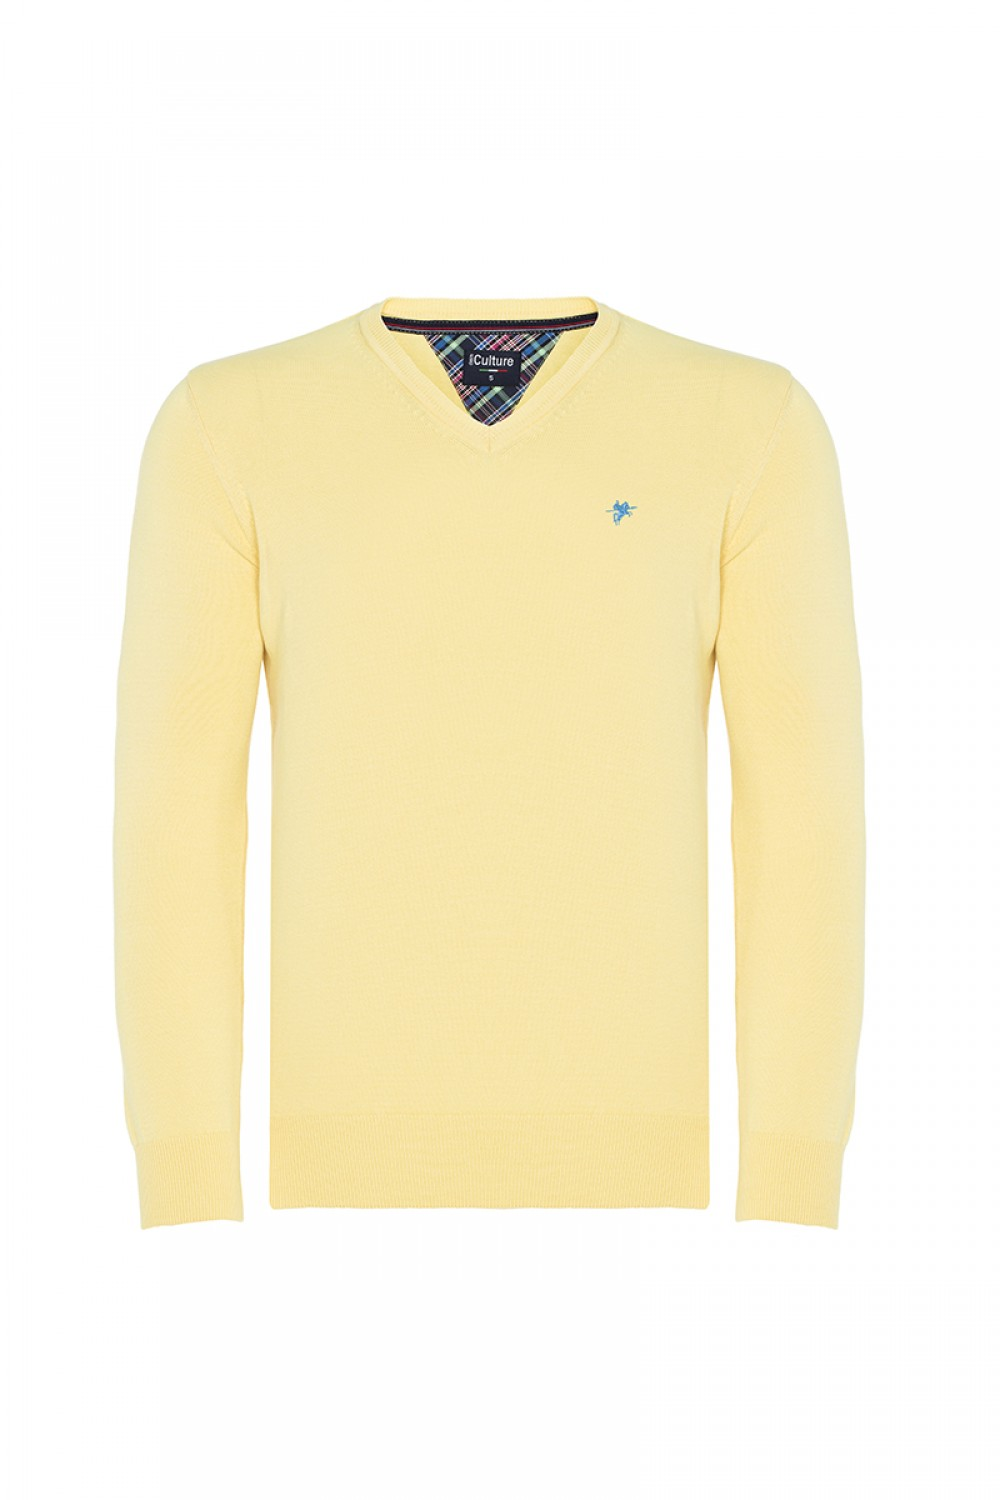 Men's Pullover  V-neck Yellow Cotton